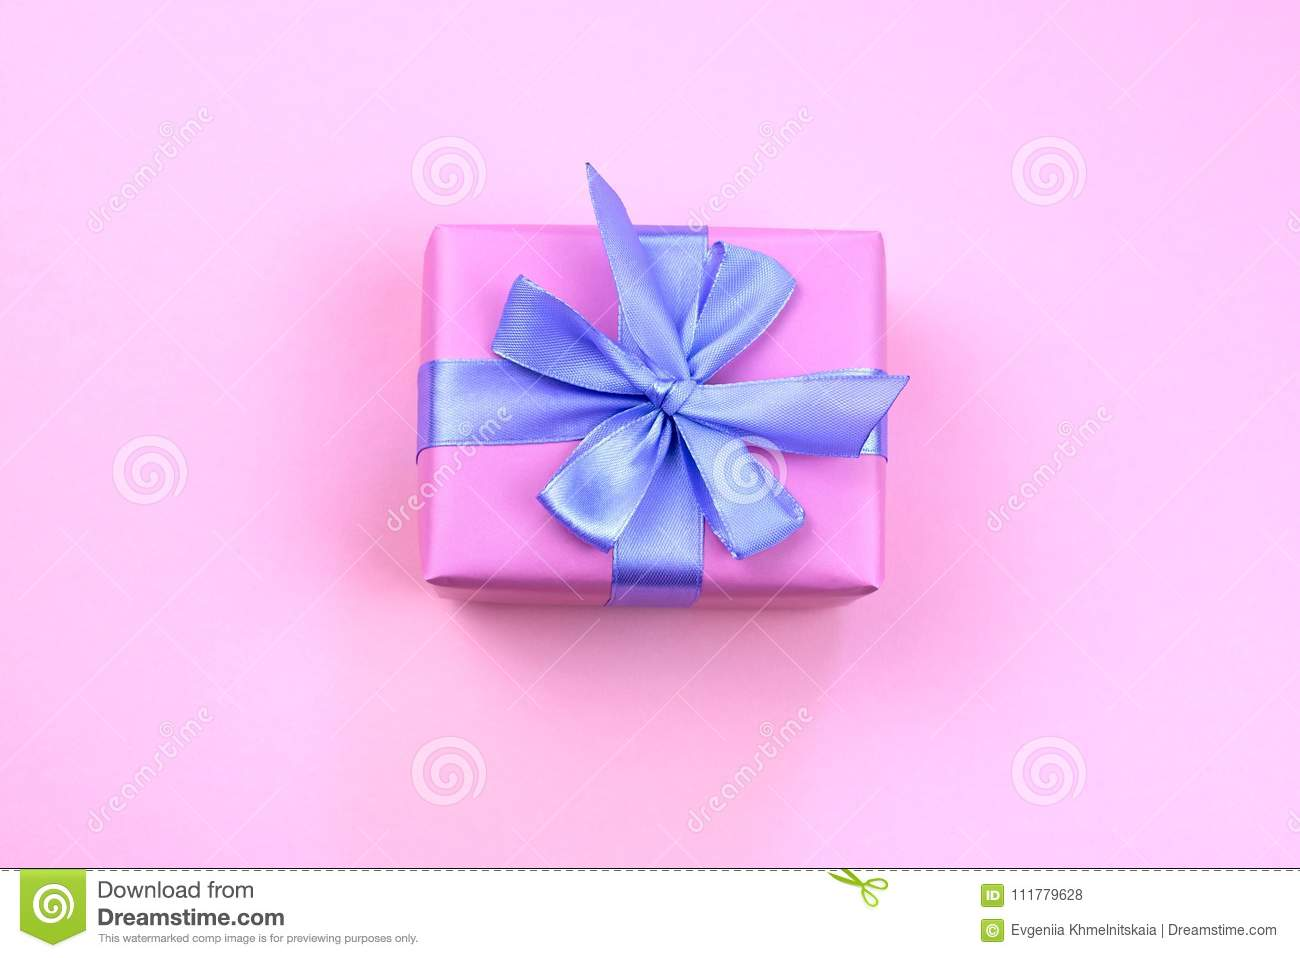 Decorative festive gift box with pink color on pink background.